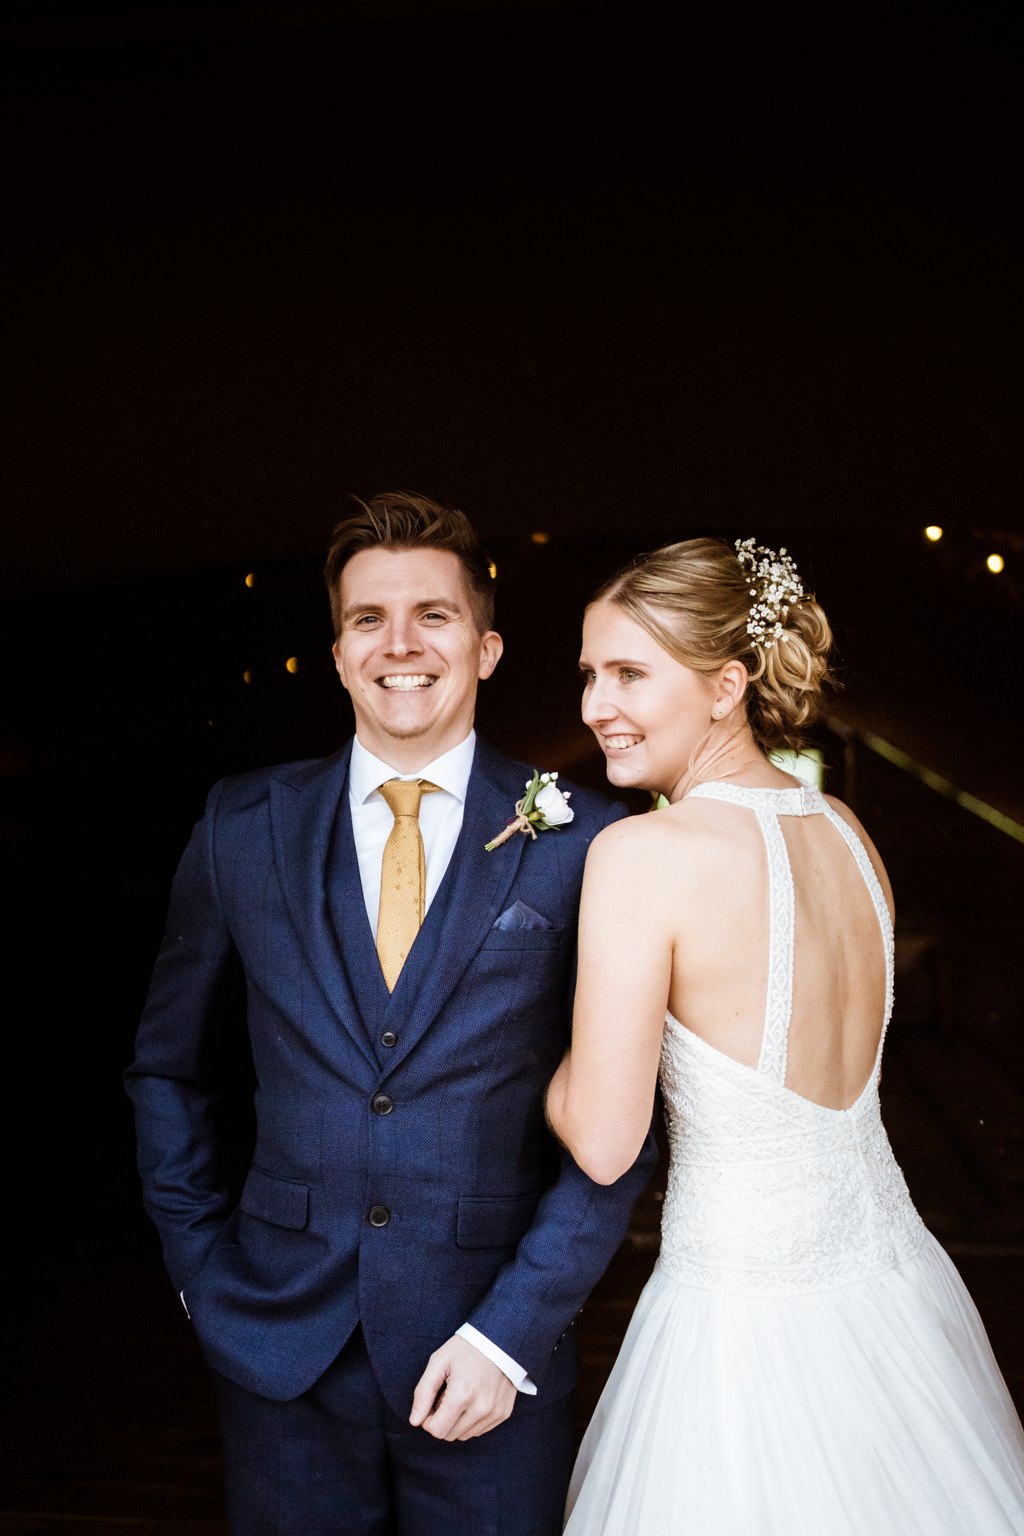 Sophie and Christopher's joyful, festive 2020 wedding at Jimmy's Farm, with Him & Her Wedding Photography (10)